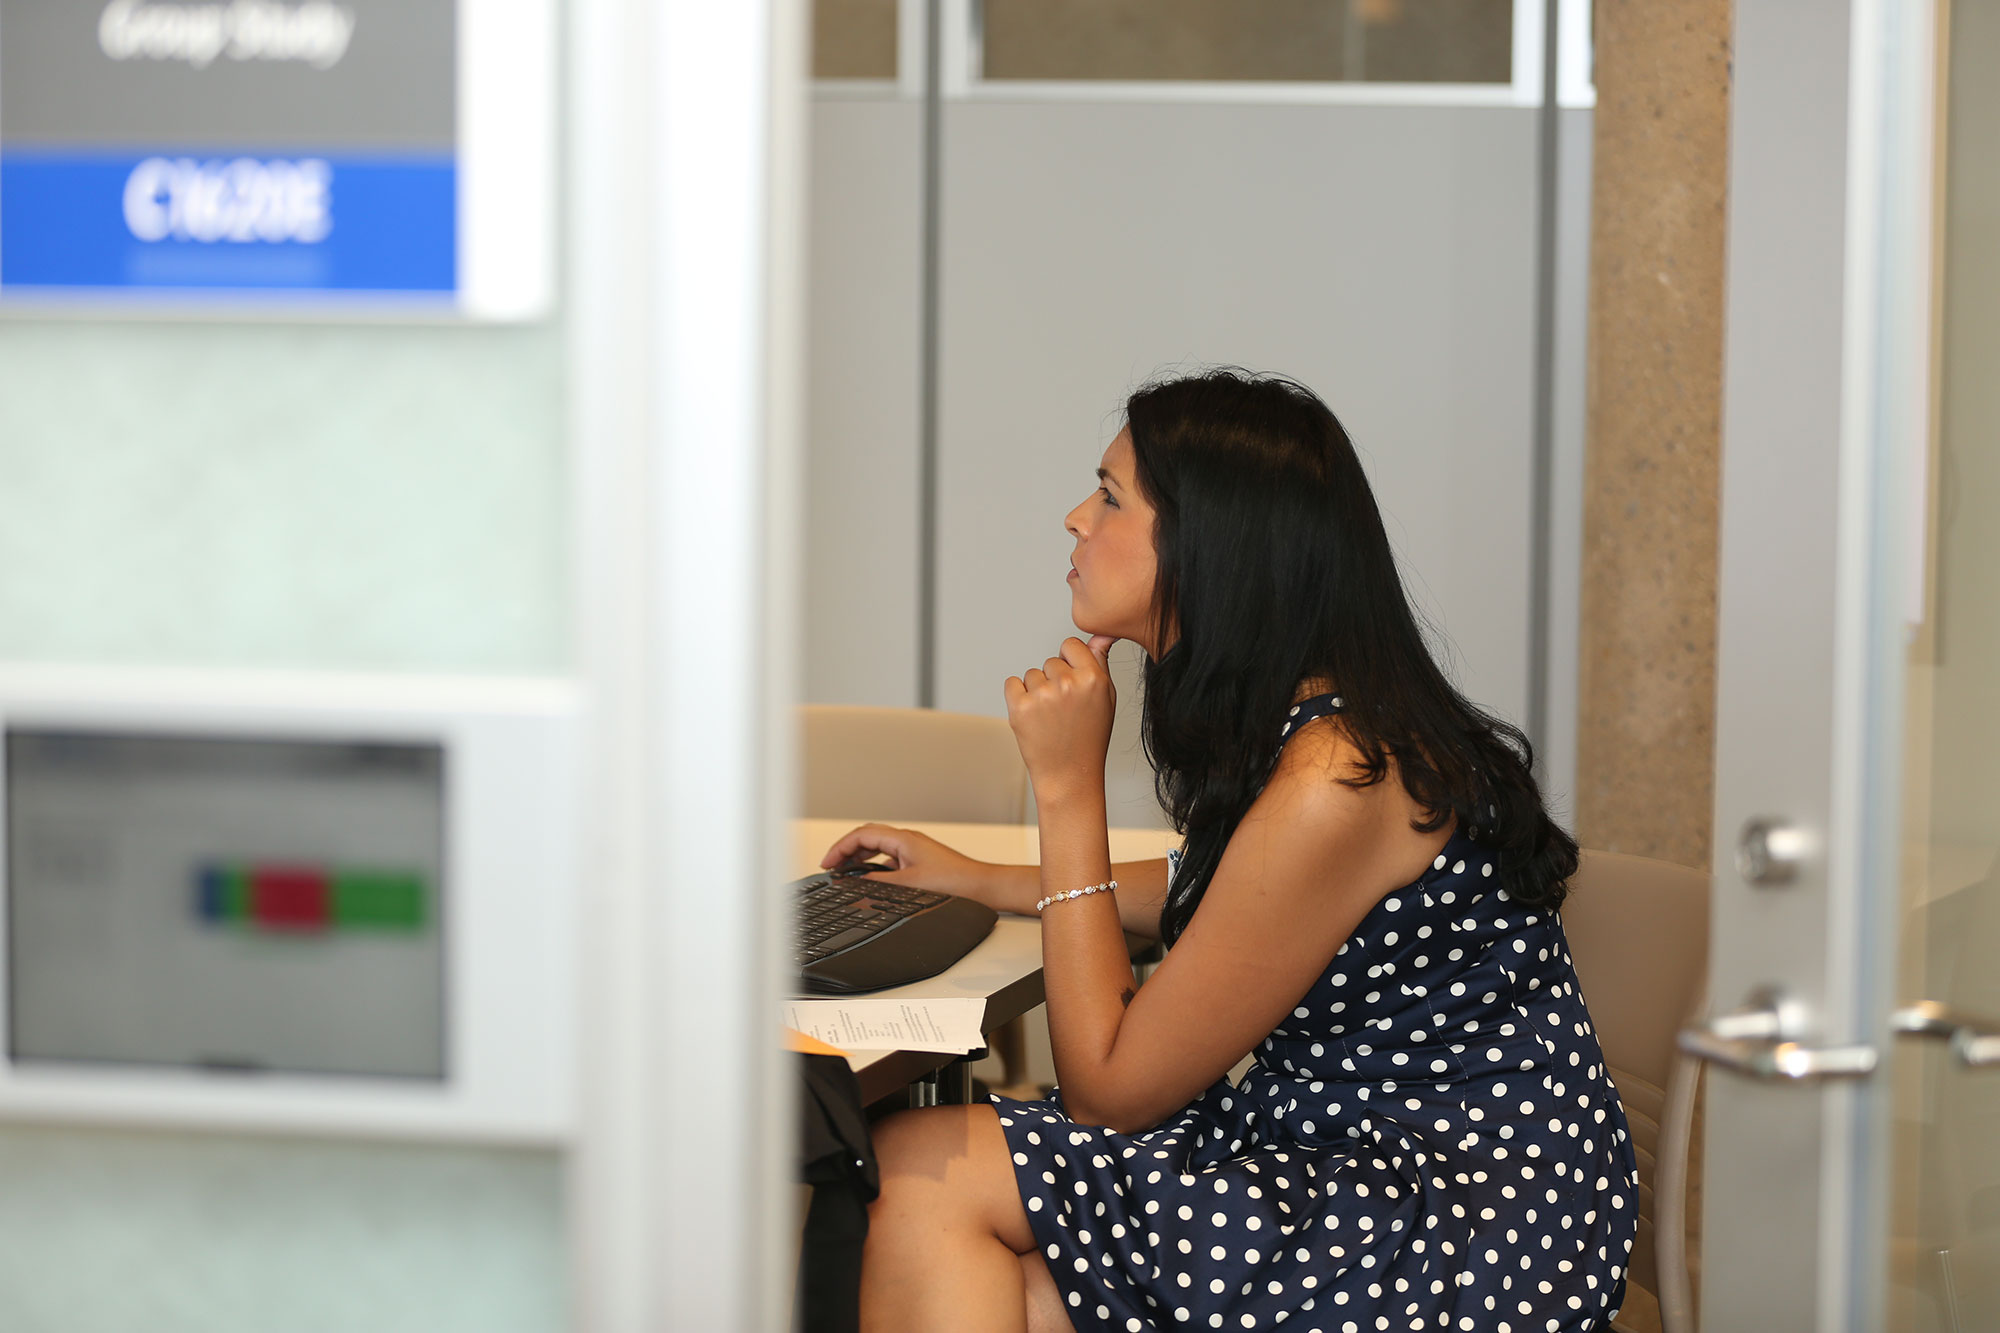 A student is seen working in a group study space at Harrell Health Sciences Library, Penn State College of Medicine, Hershey, Pa.